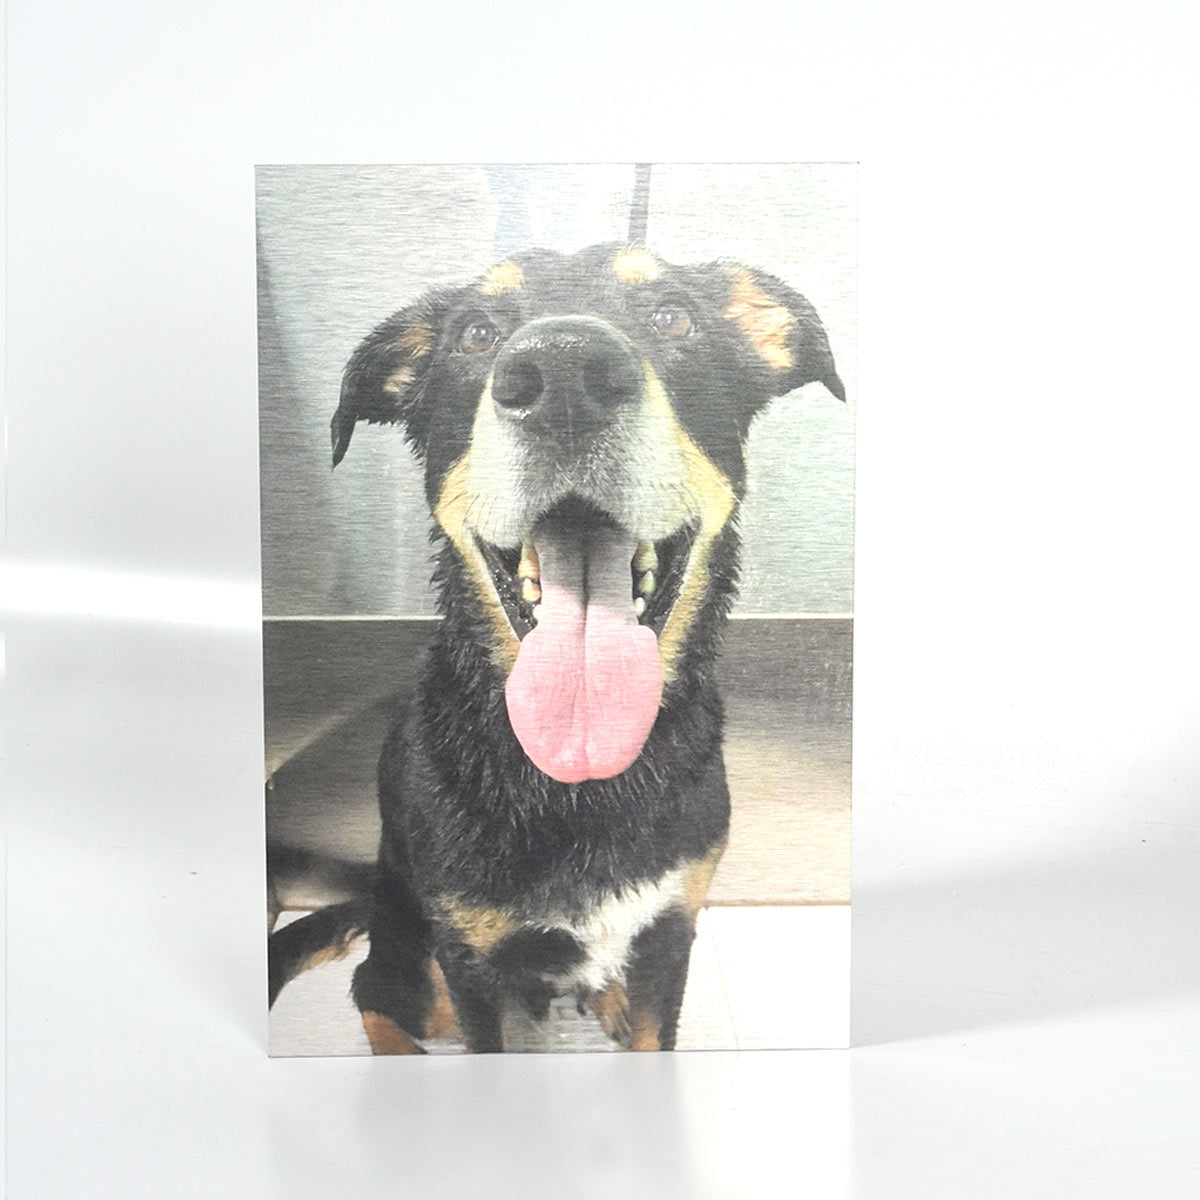 Dog Portrait Photo Printed on Brushed Silver Metal